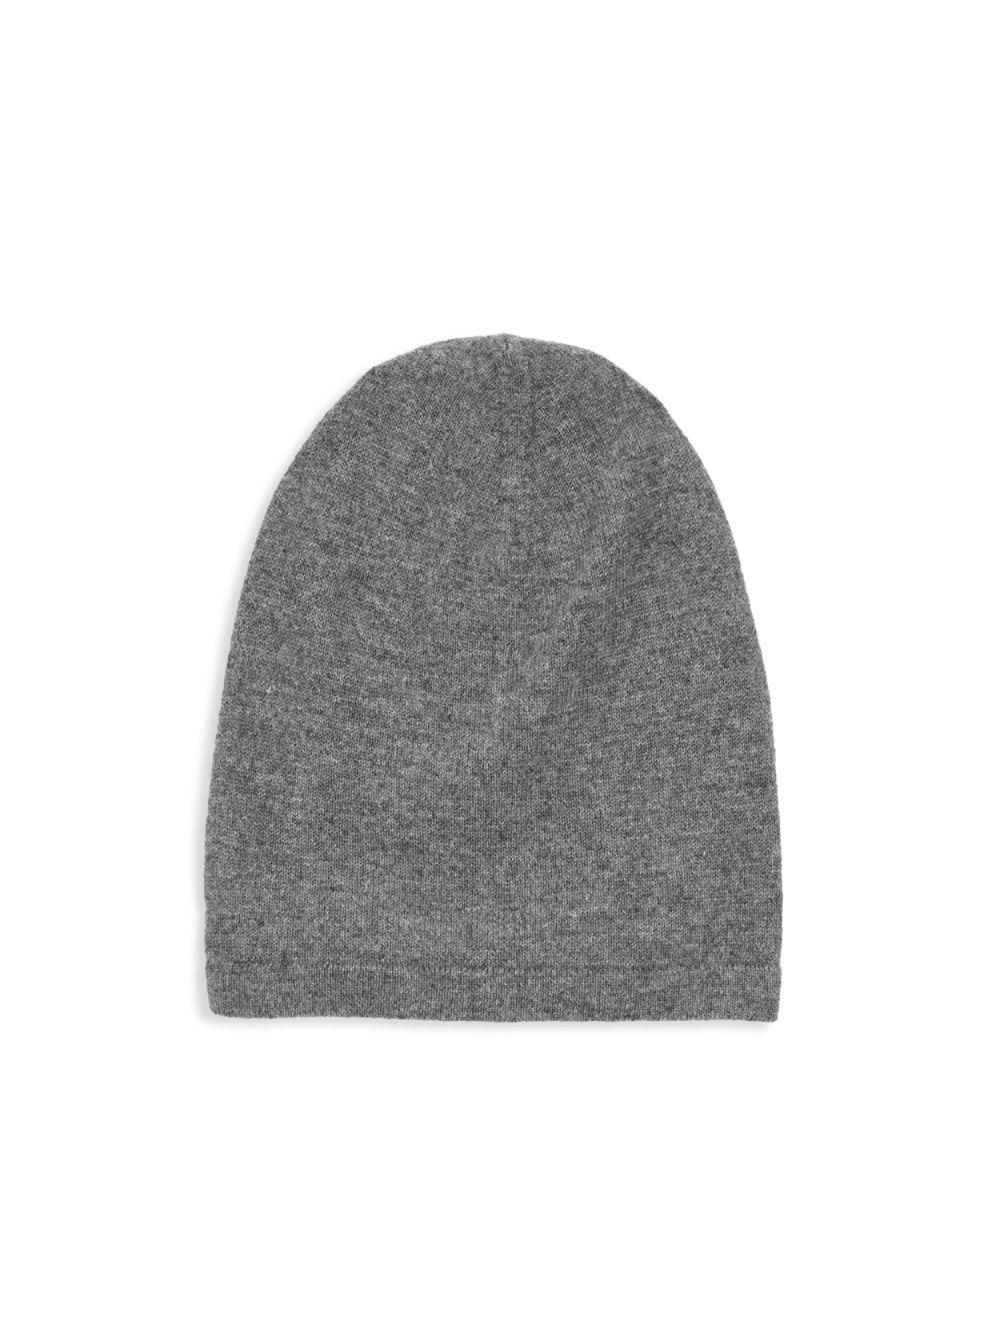 49d197f142a4f Lyst - Saks Fifth Avenue Classic Cashmere Beanie in Gray